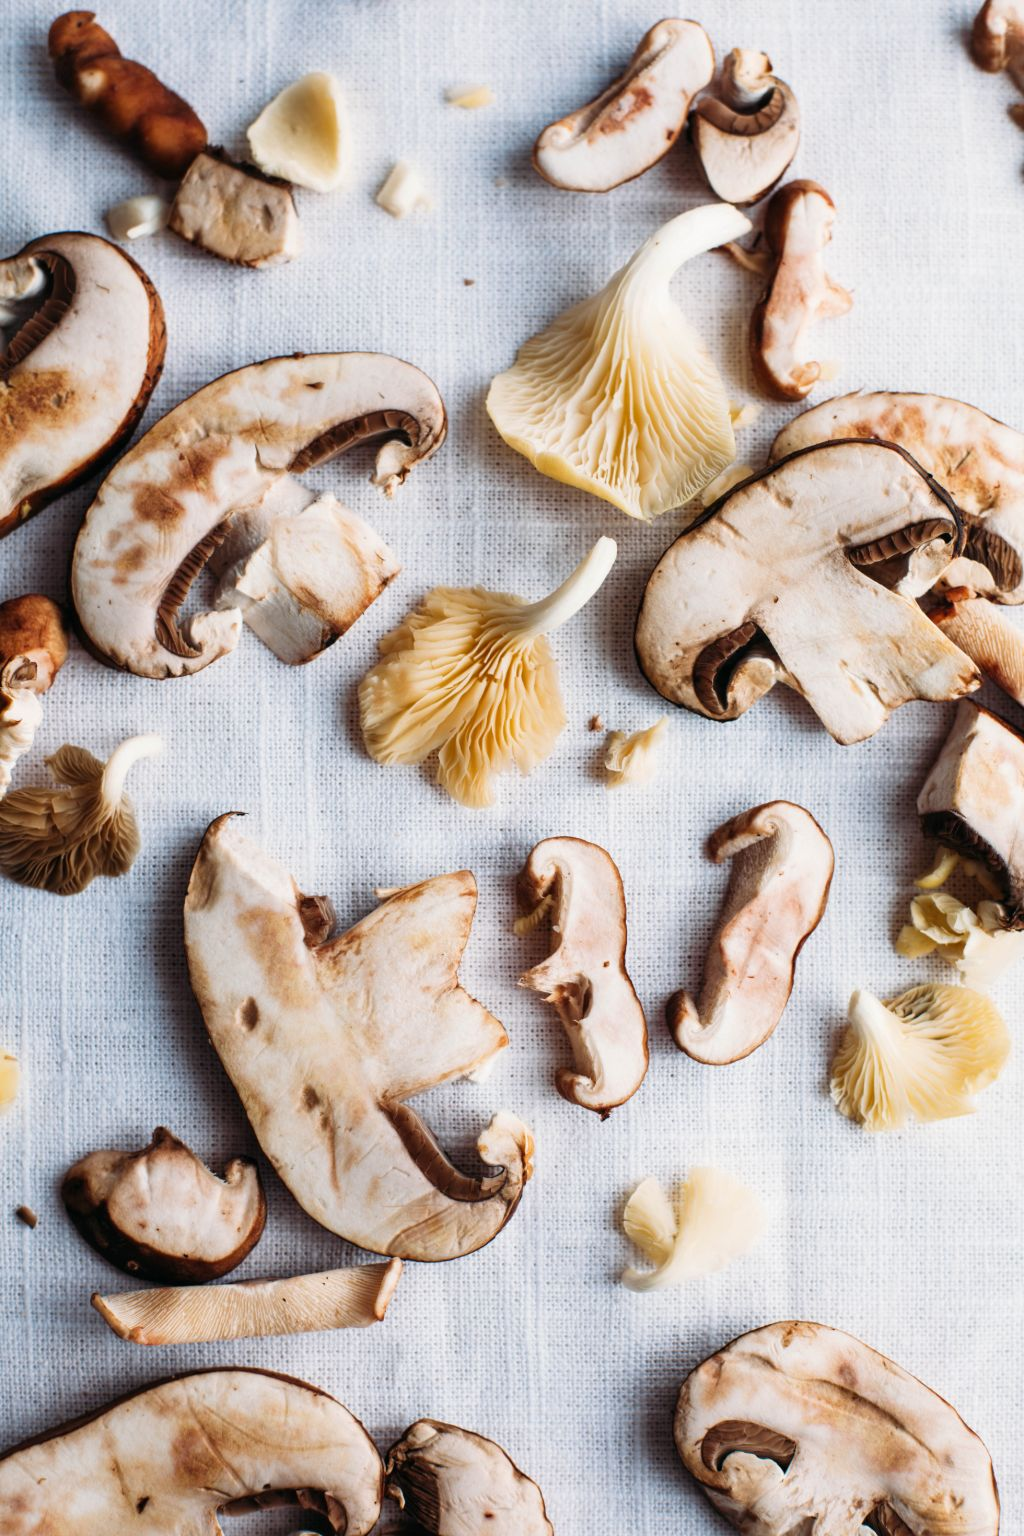 Miso Butter and Mushroom Orecchiette - Tastemaker Blog